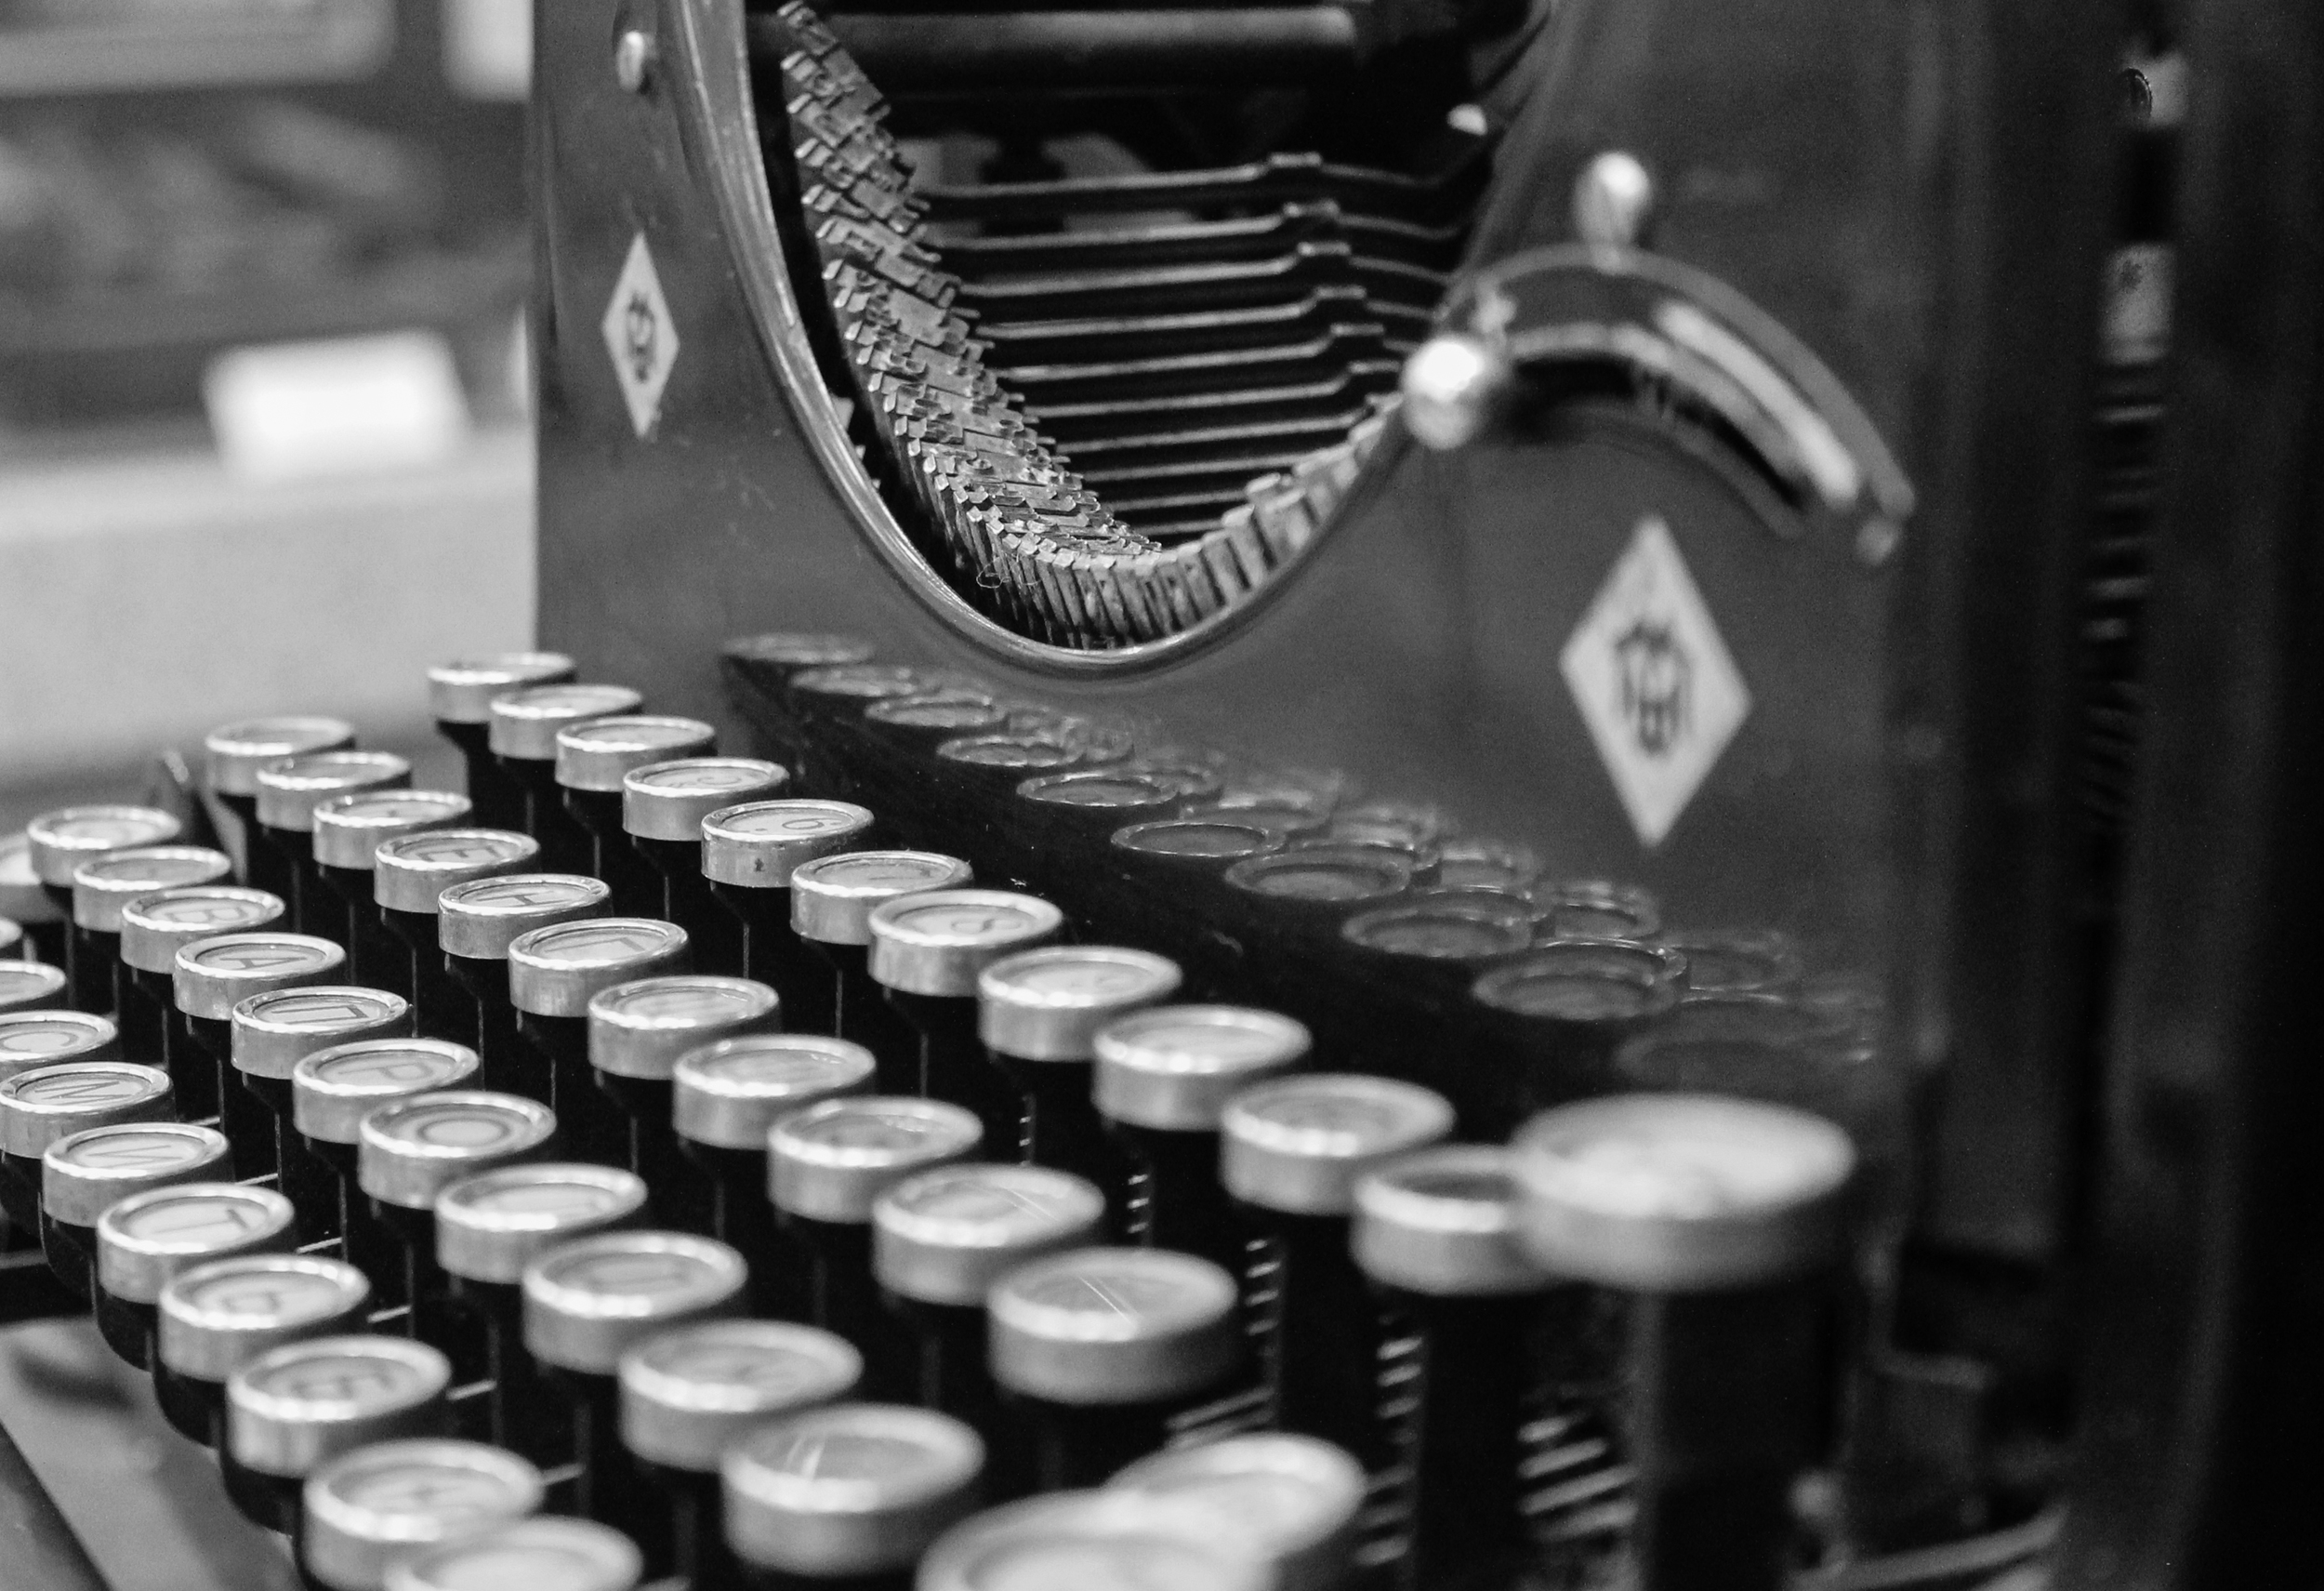 maybe not on a typewriter, but whatever floats your boat (is that a metaphor?)